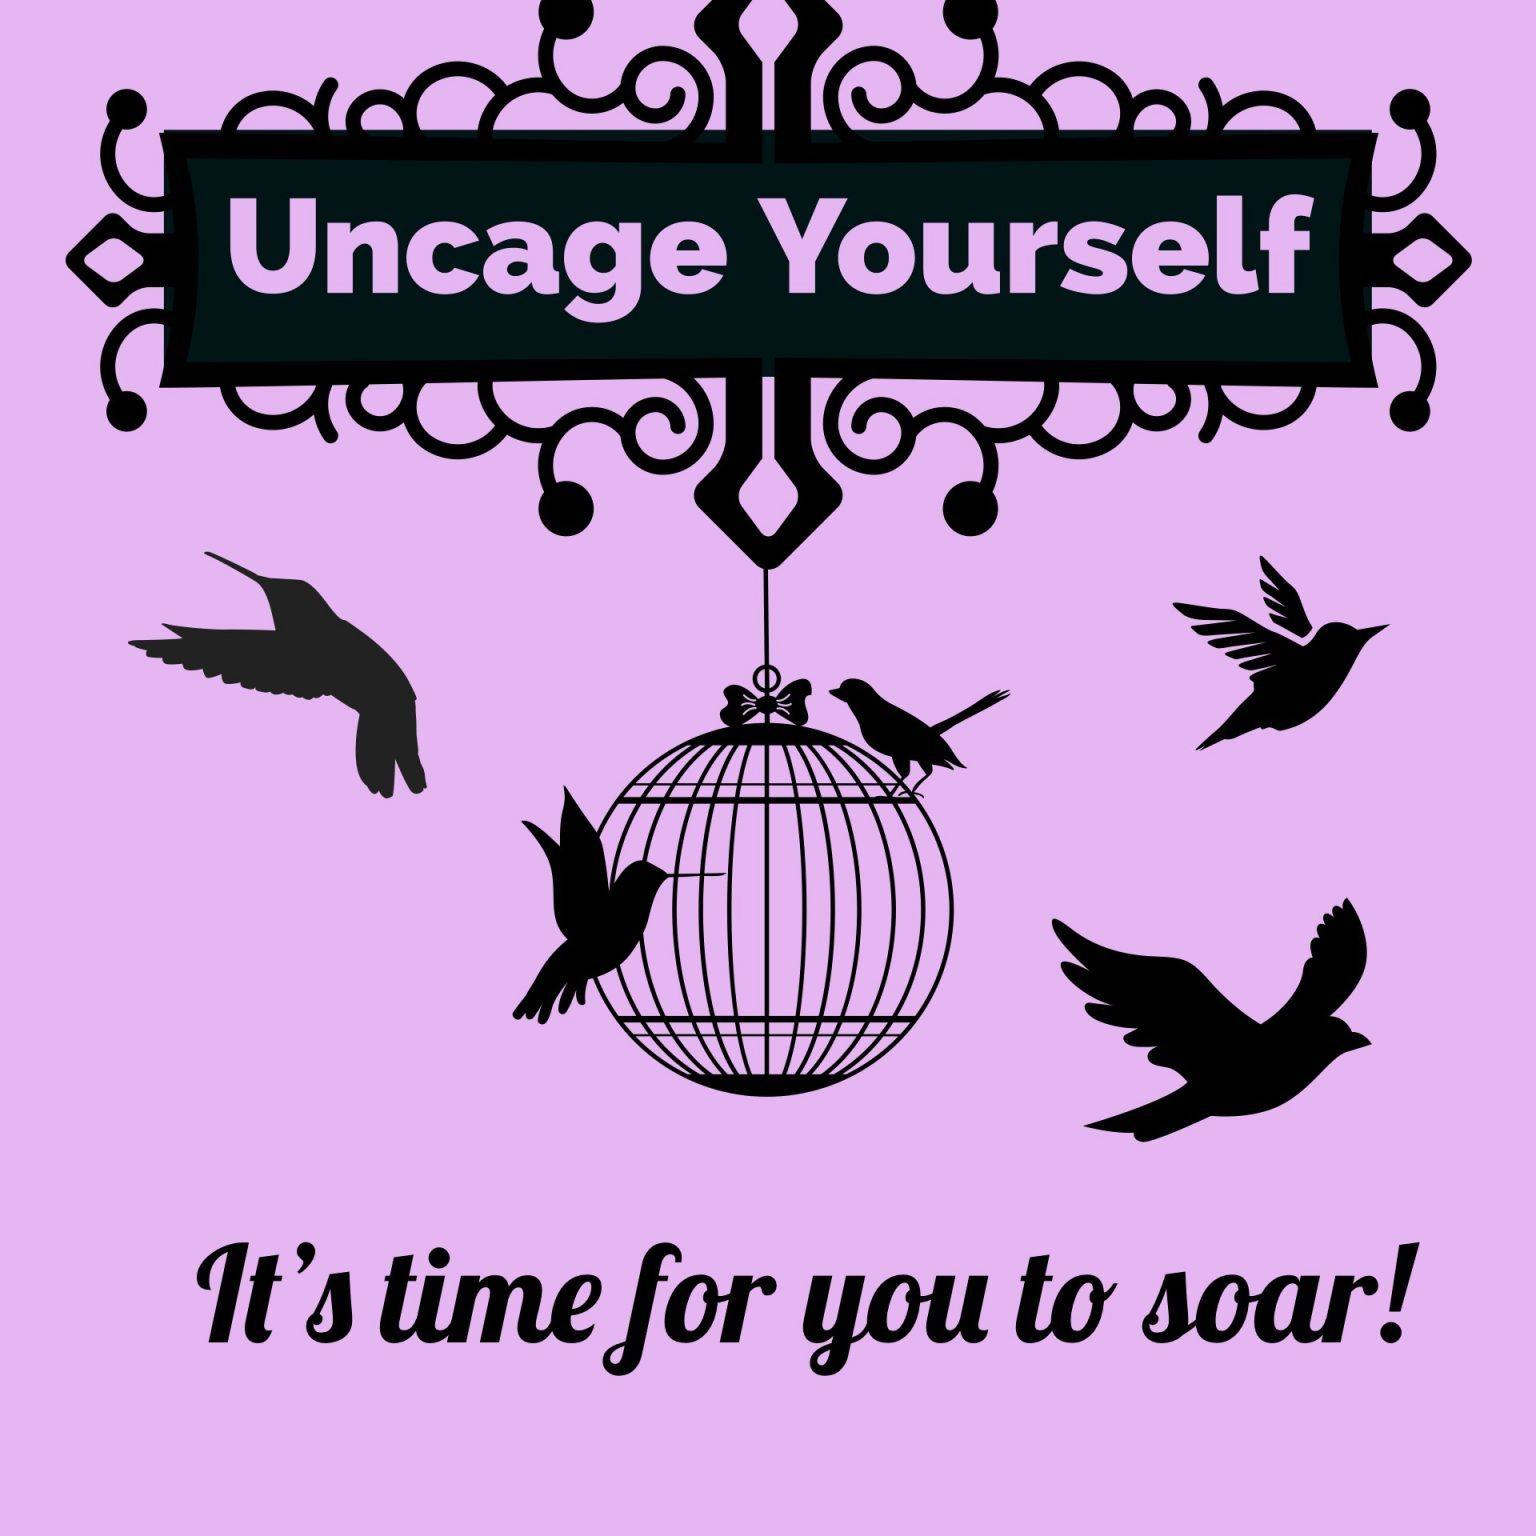 Uncage Yourself